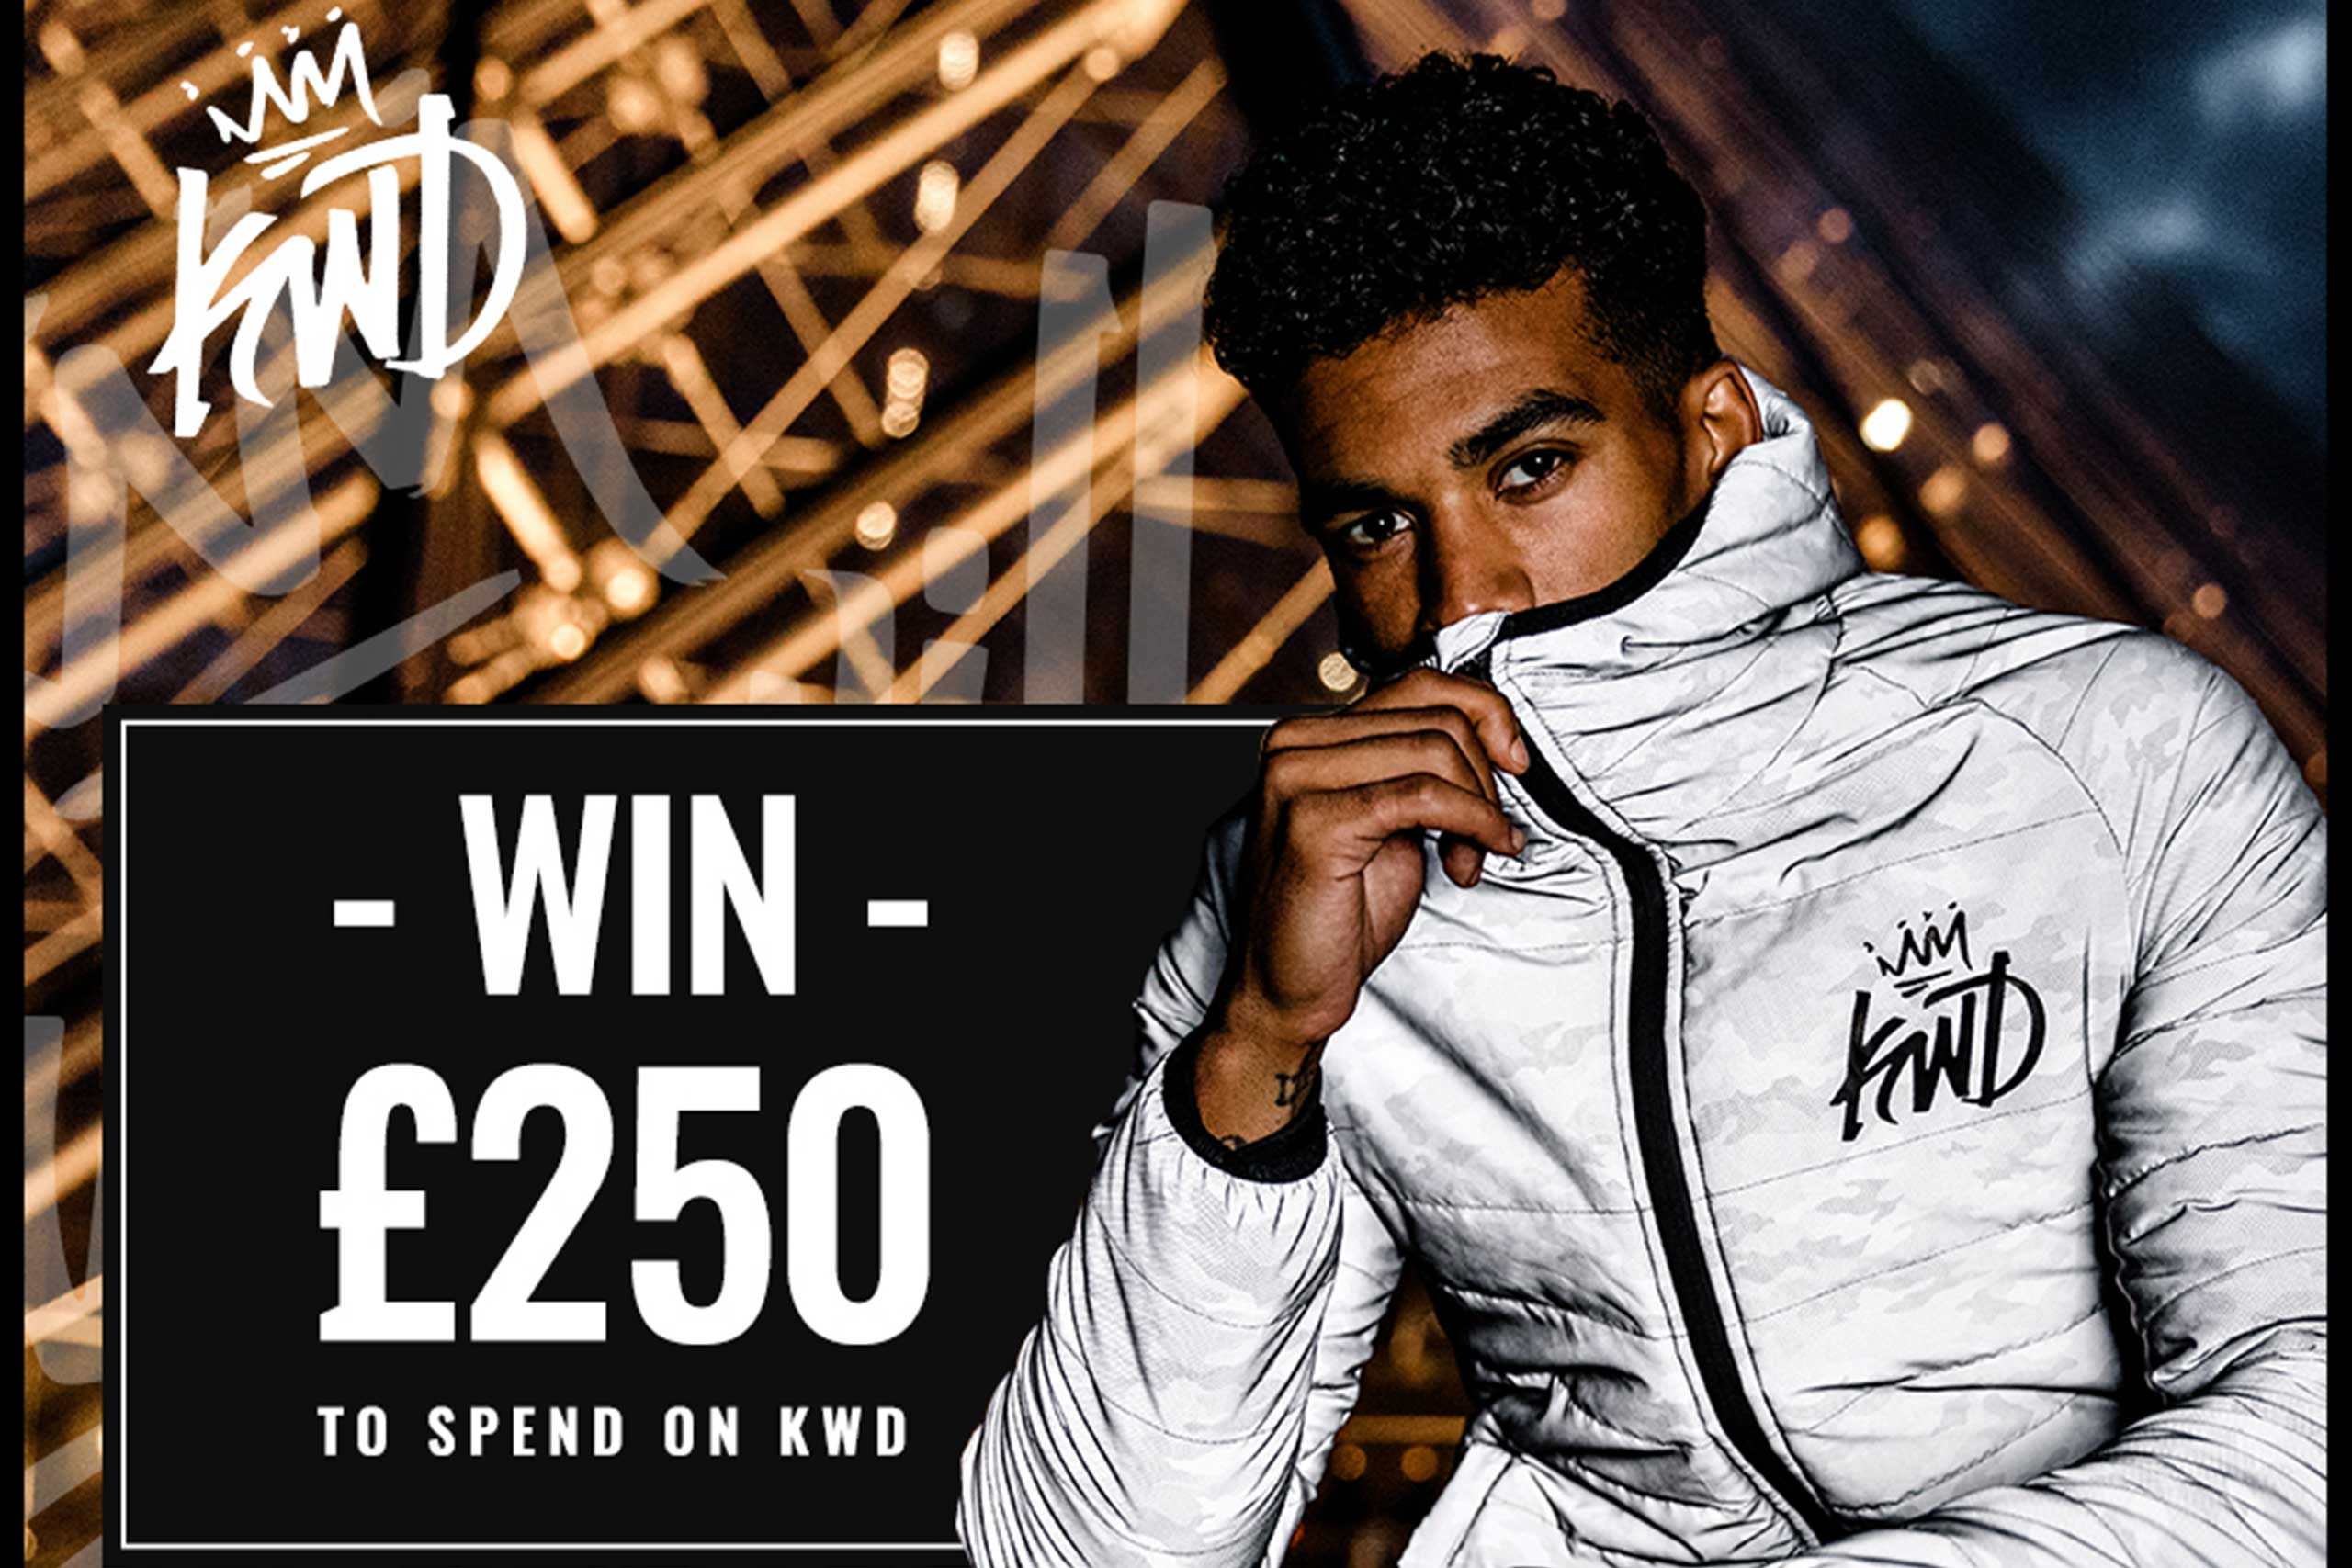 Want to win £250 to spend on KWD?